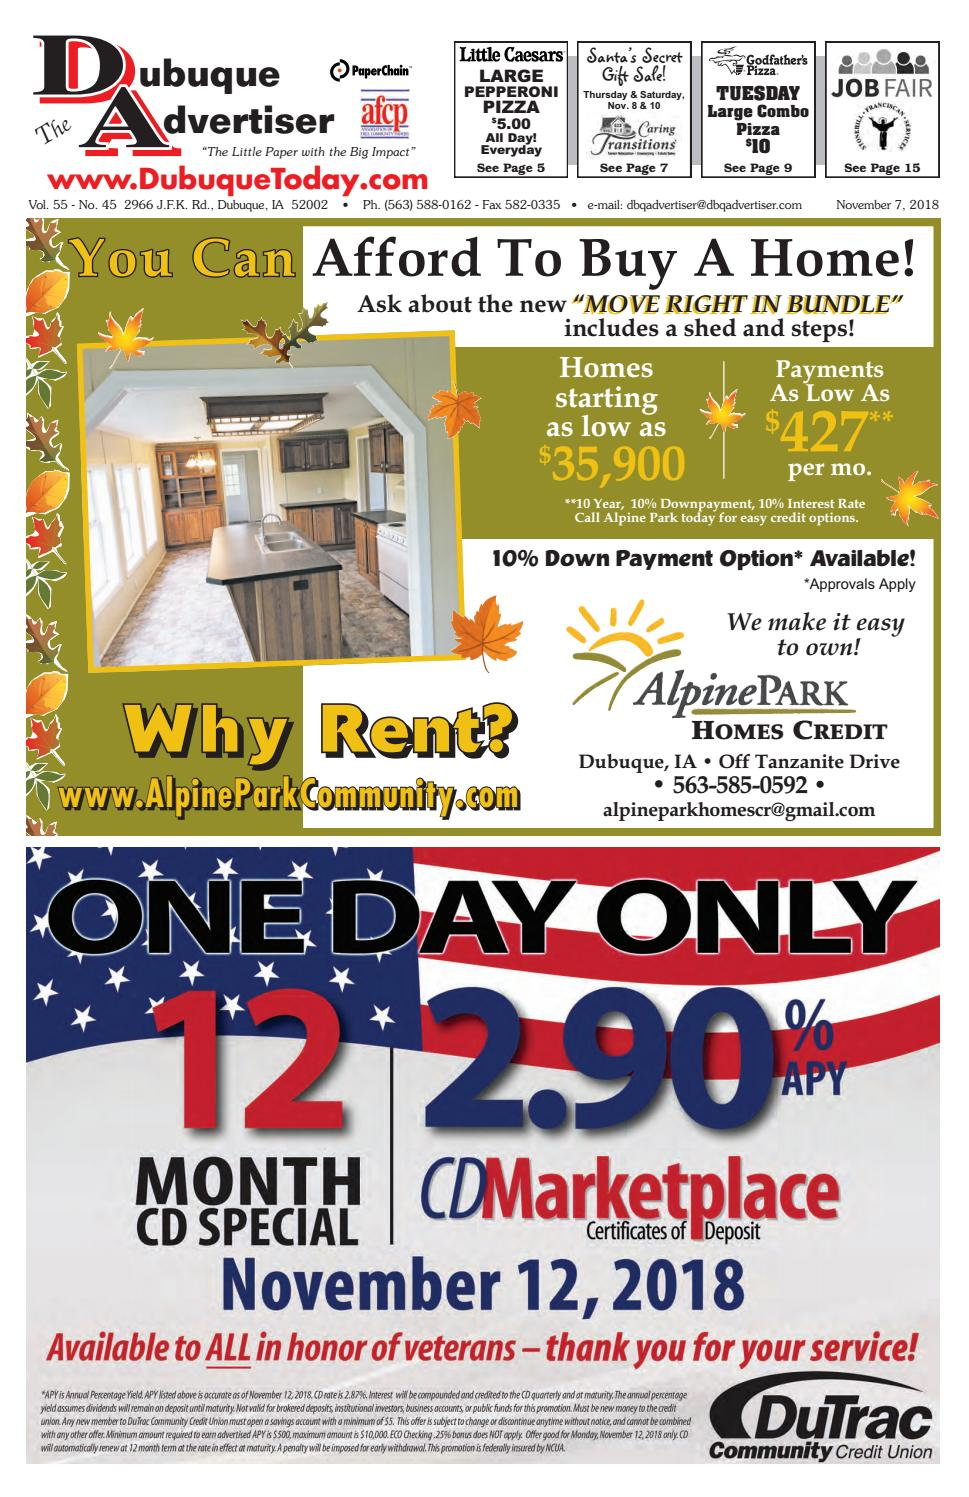 The Dubuque Advertiser November 7 2018 By Led Stainless Steel Switch Latching Push Button 5 Pin Du Pk Ebay Issuu